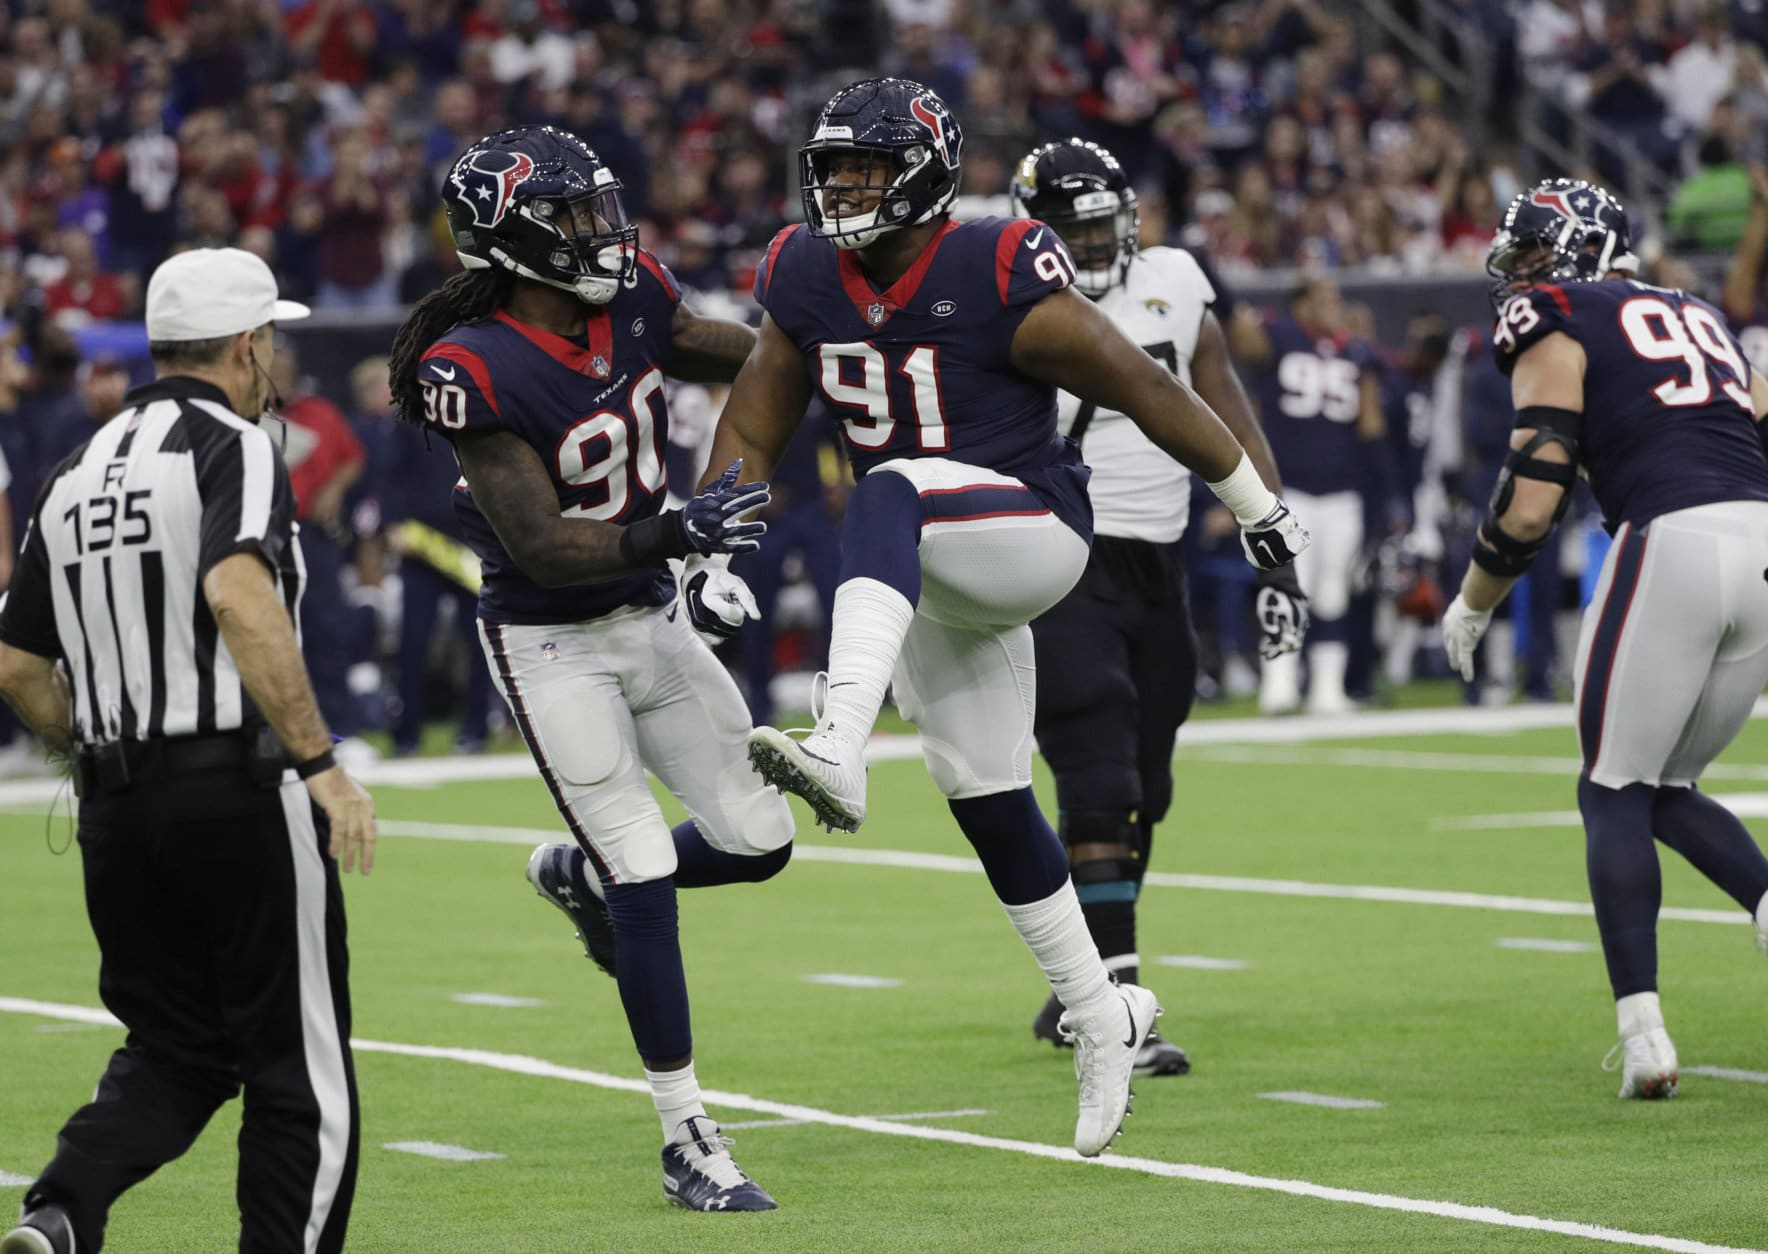 Houston Texans outside linebacker Jadeveon Clowney (90) and defensive end Carlos Watkins (91) celebrate after sacking Jacksonville Jaguars quarterback Blake Bortles during the second half of an NFL football game, Sunday, Dec. 30, 2018, in Houston. (AP Photo/David J. Phillip)